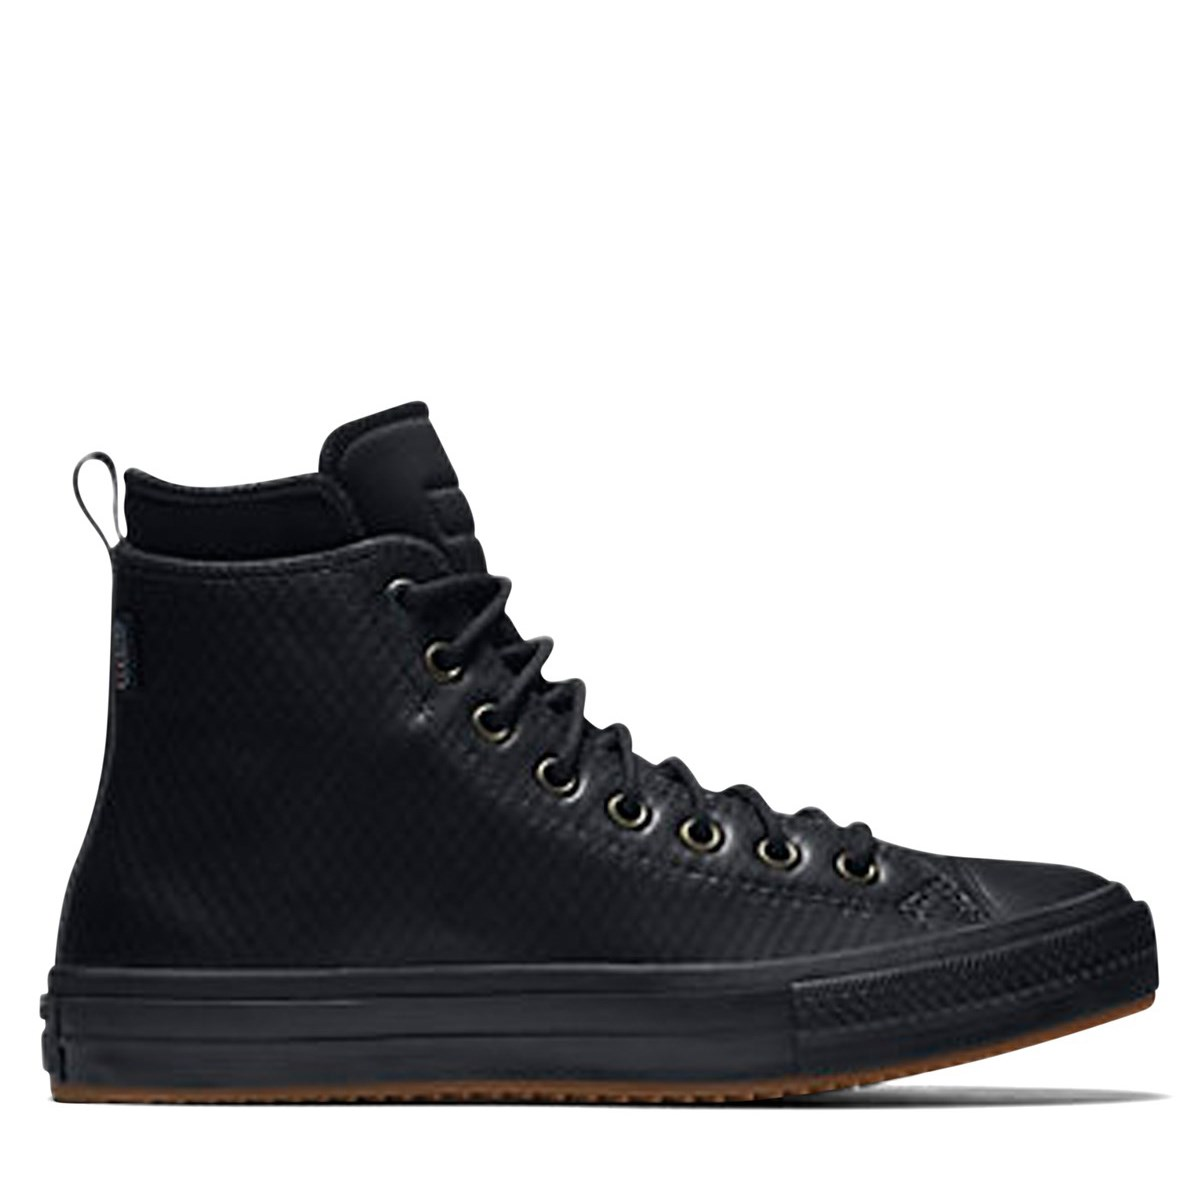 9962cd4694fb Waterproof Men s Chuck Taylor Mesh Backed Black Leather Boot. Previous.  default view